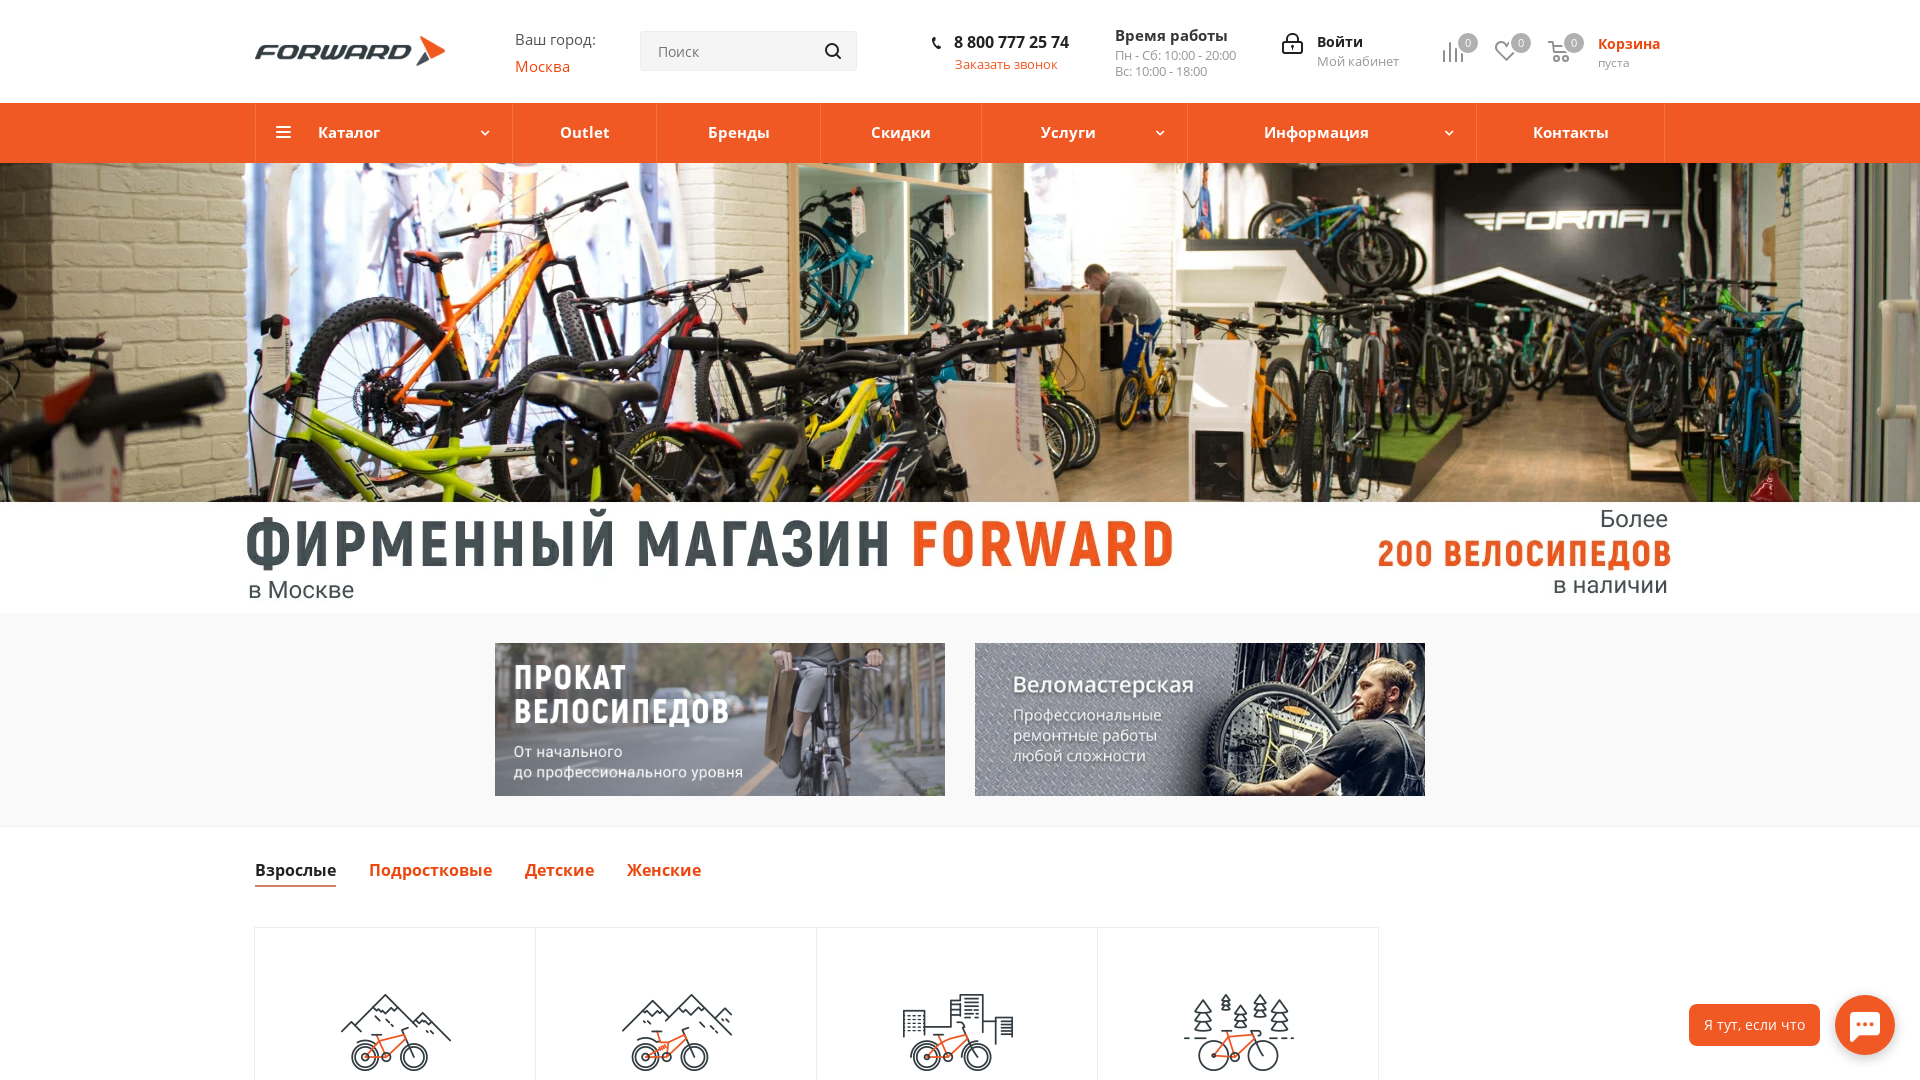 Forward.bike website